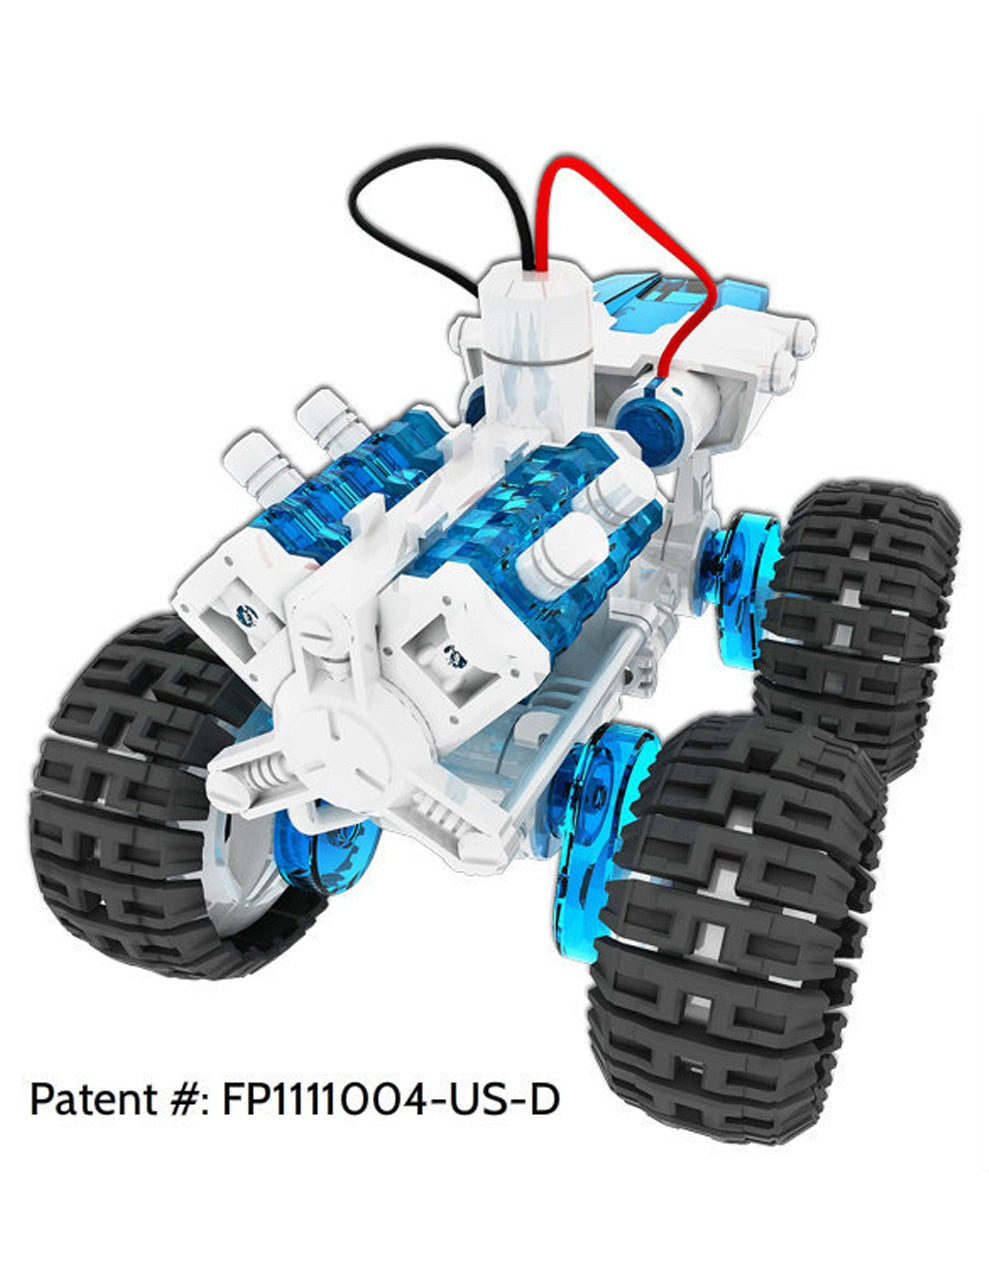 OWI Robot Salt Water Fuel Cell Monster Truck Kit owi-752